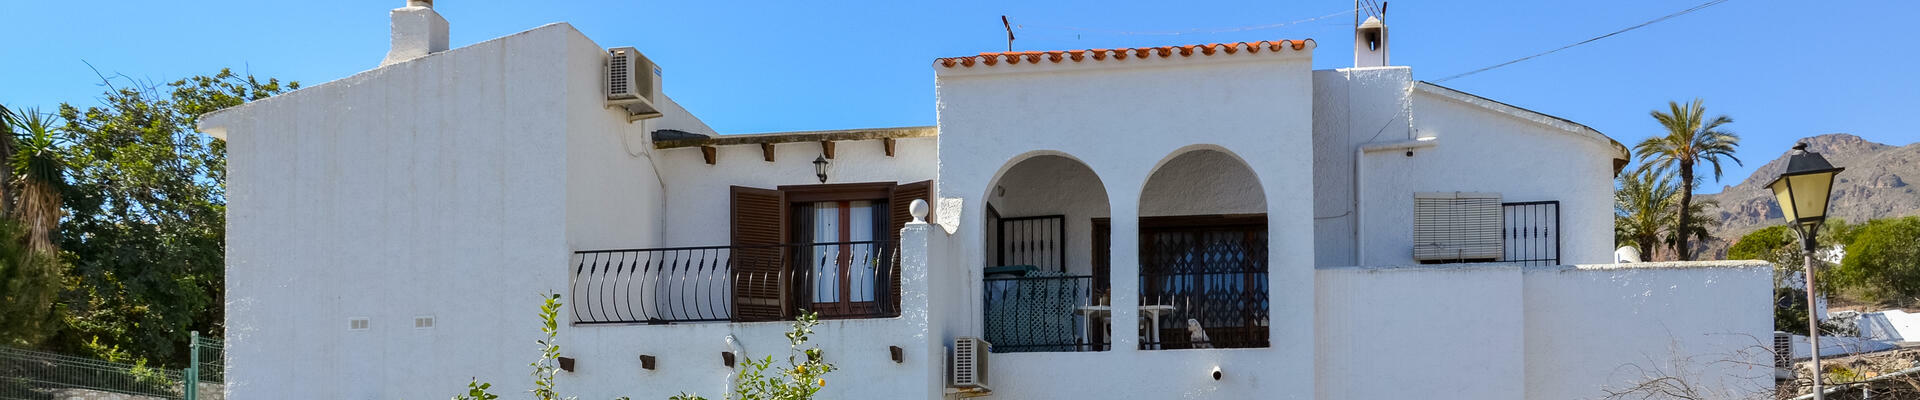 DV1486: 4 Bedroom Villa for Sale